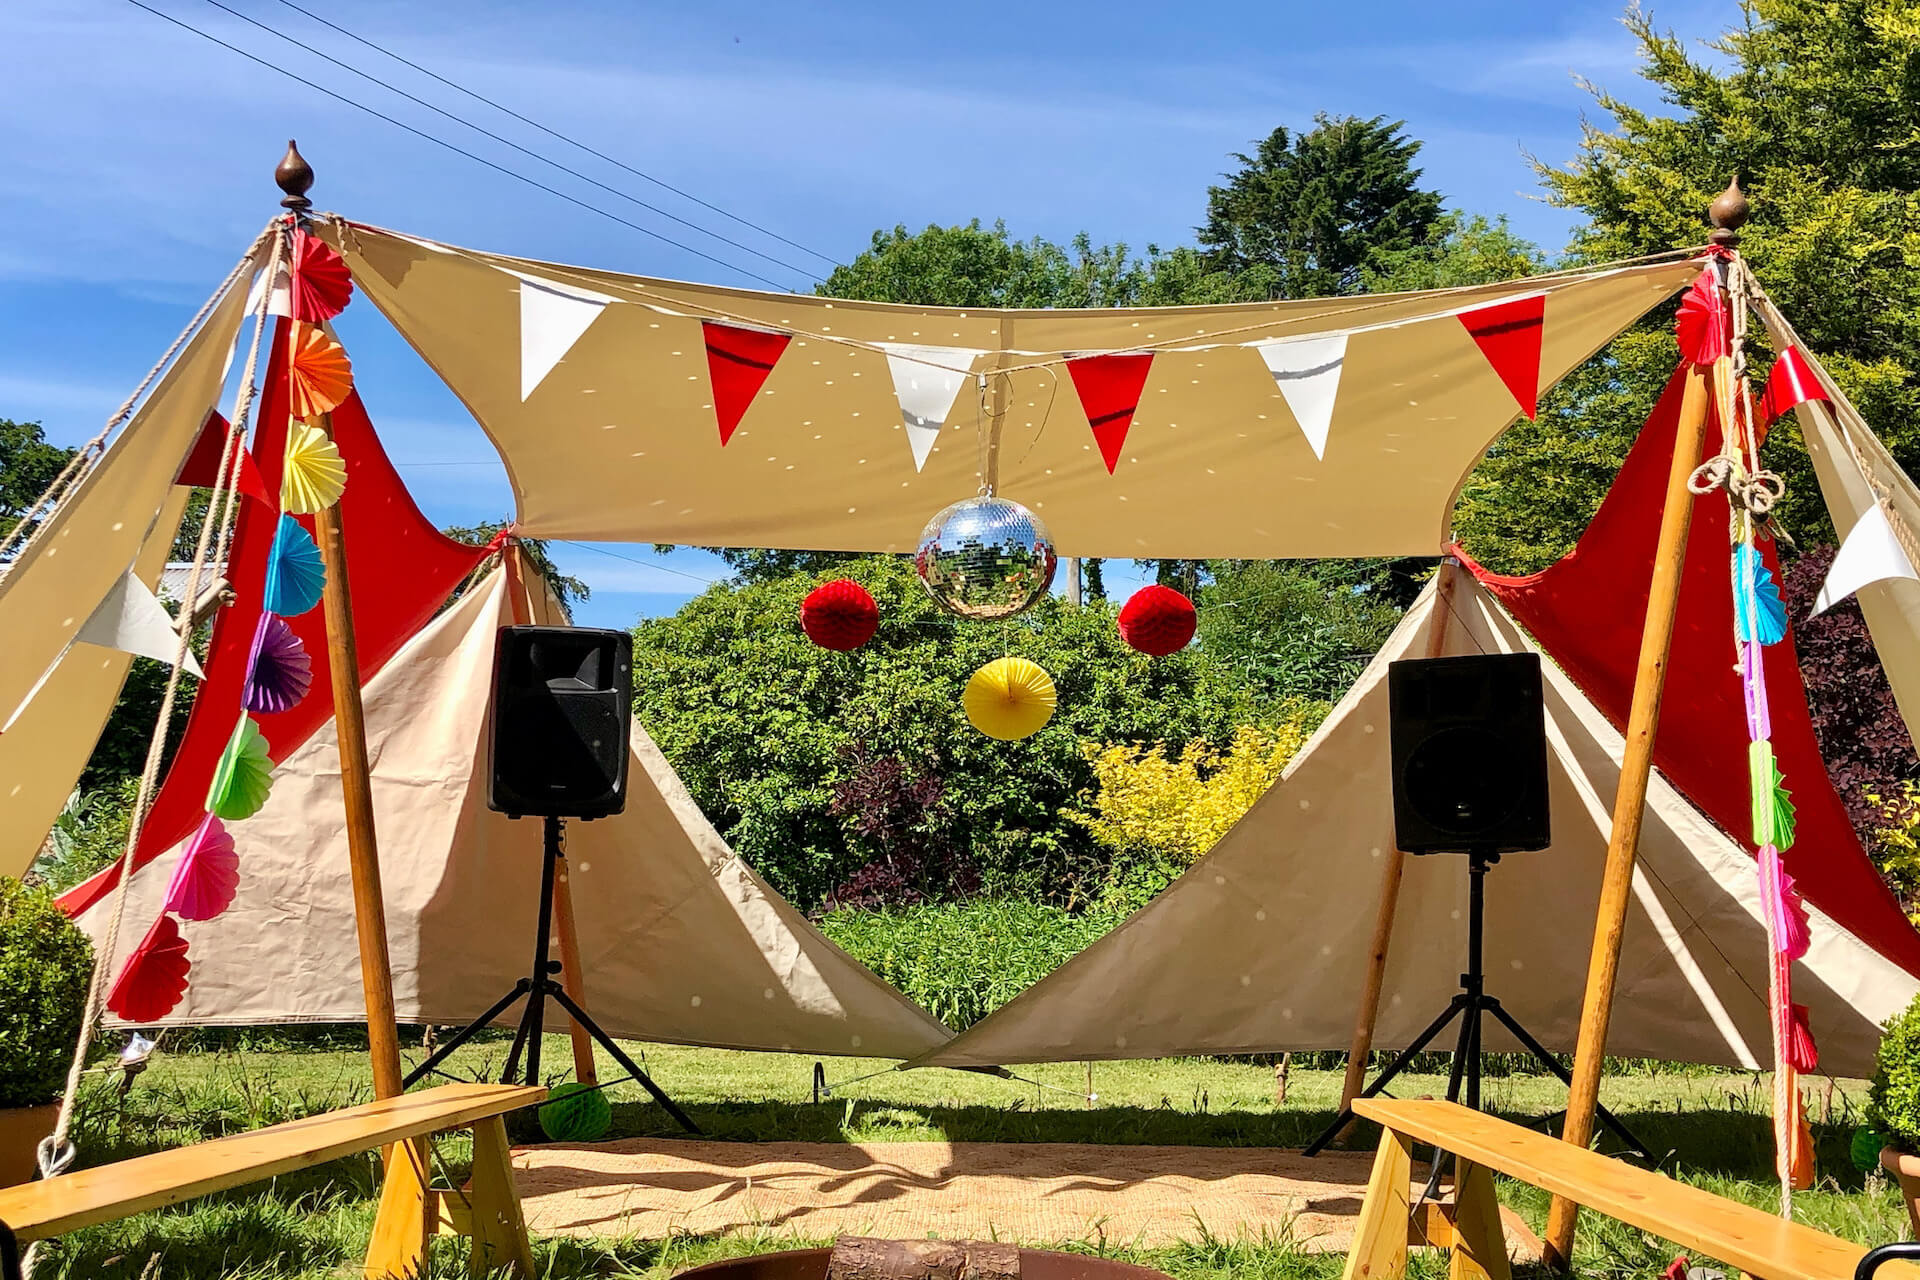 Private party in a shade sail structure